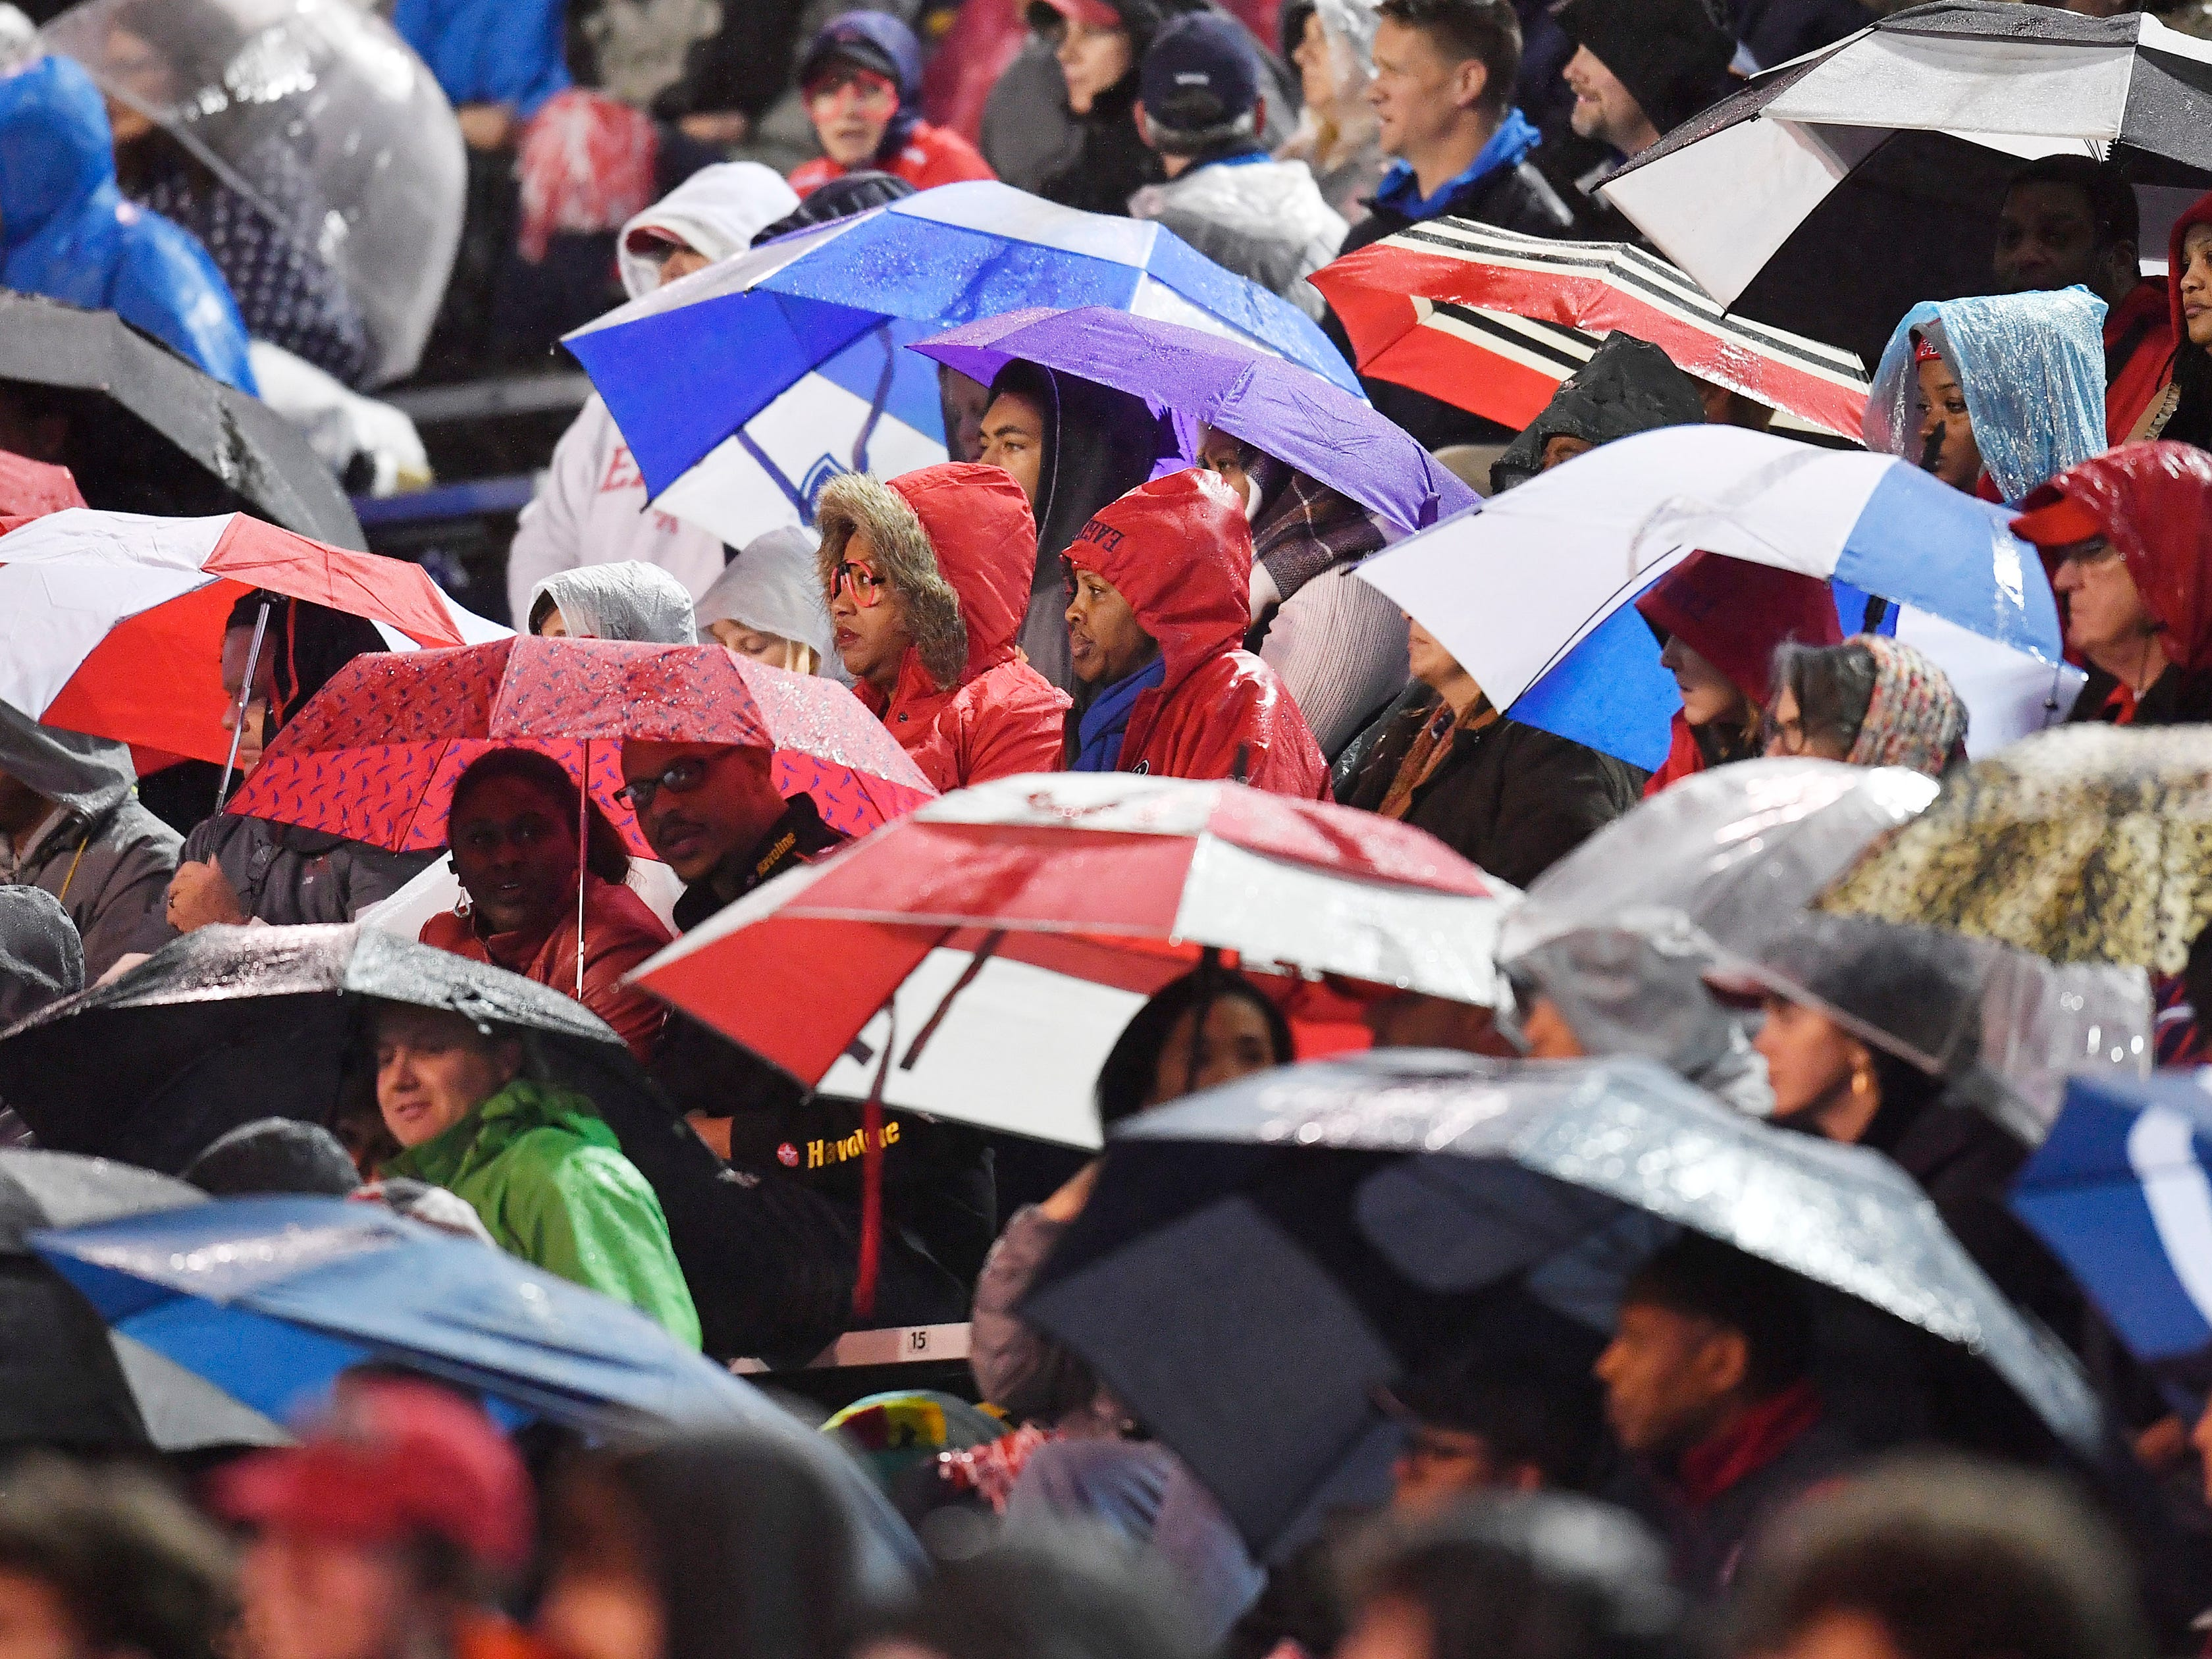 A sea of umbrellas during the second-half rain at the Division II-AAA BlueCross Bowl state championship at Tennessee Tech's Tucker Stadium in Cookeville, Tenn., on Friday, Nov. 30, 2018.